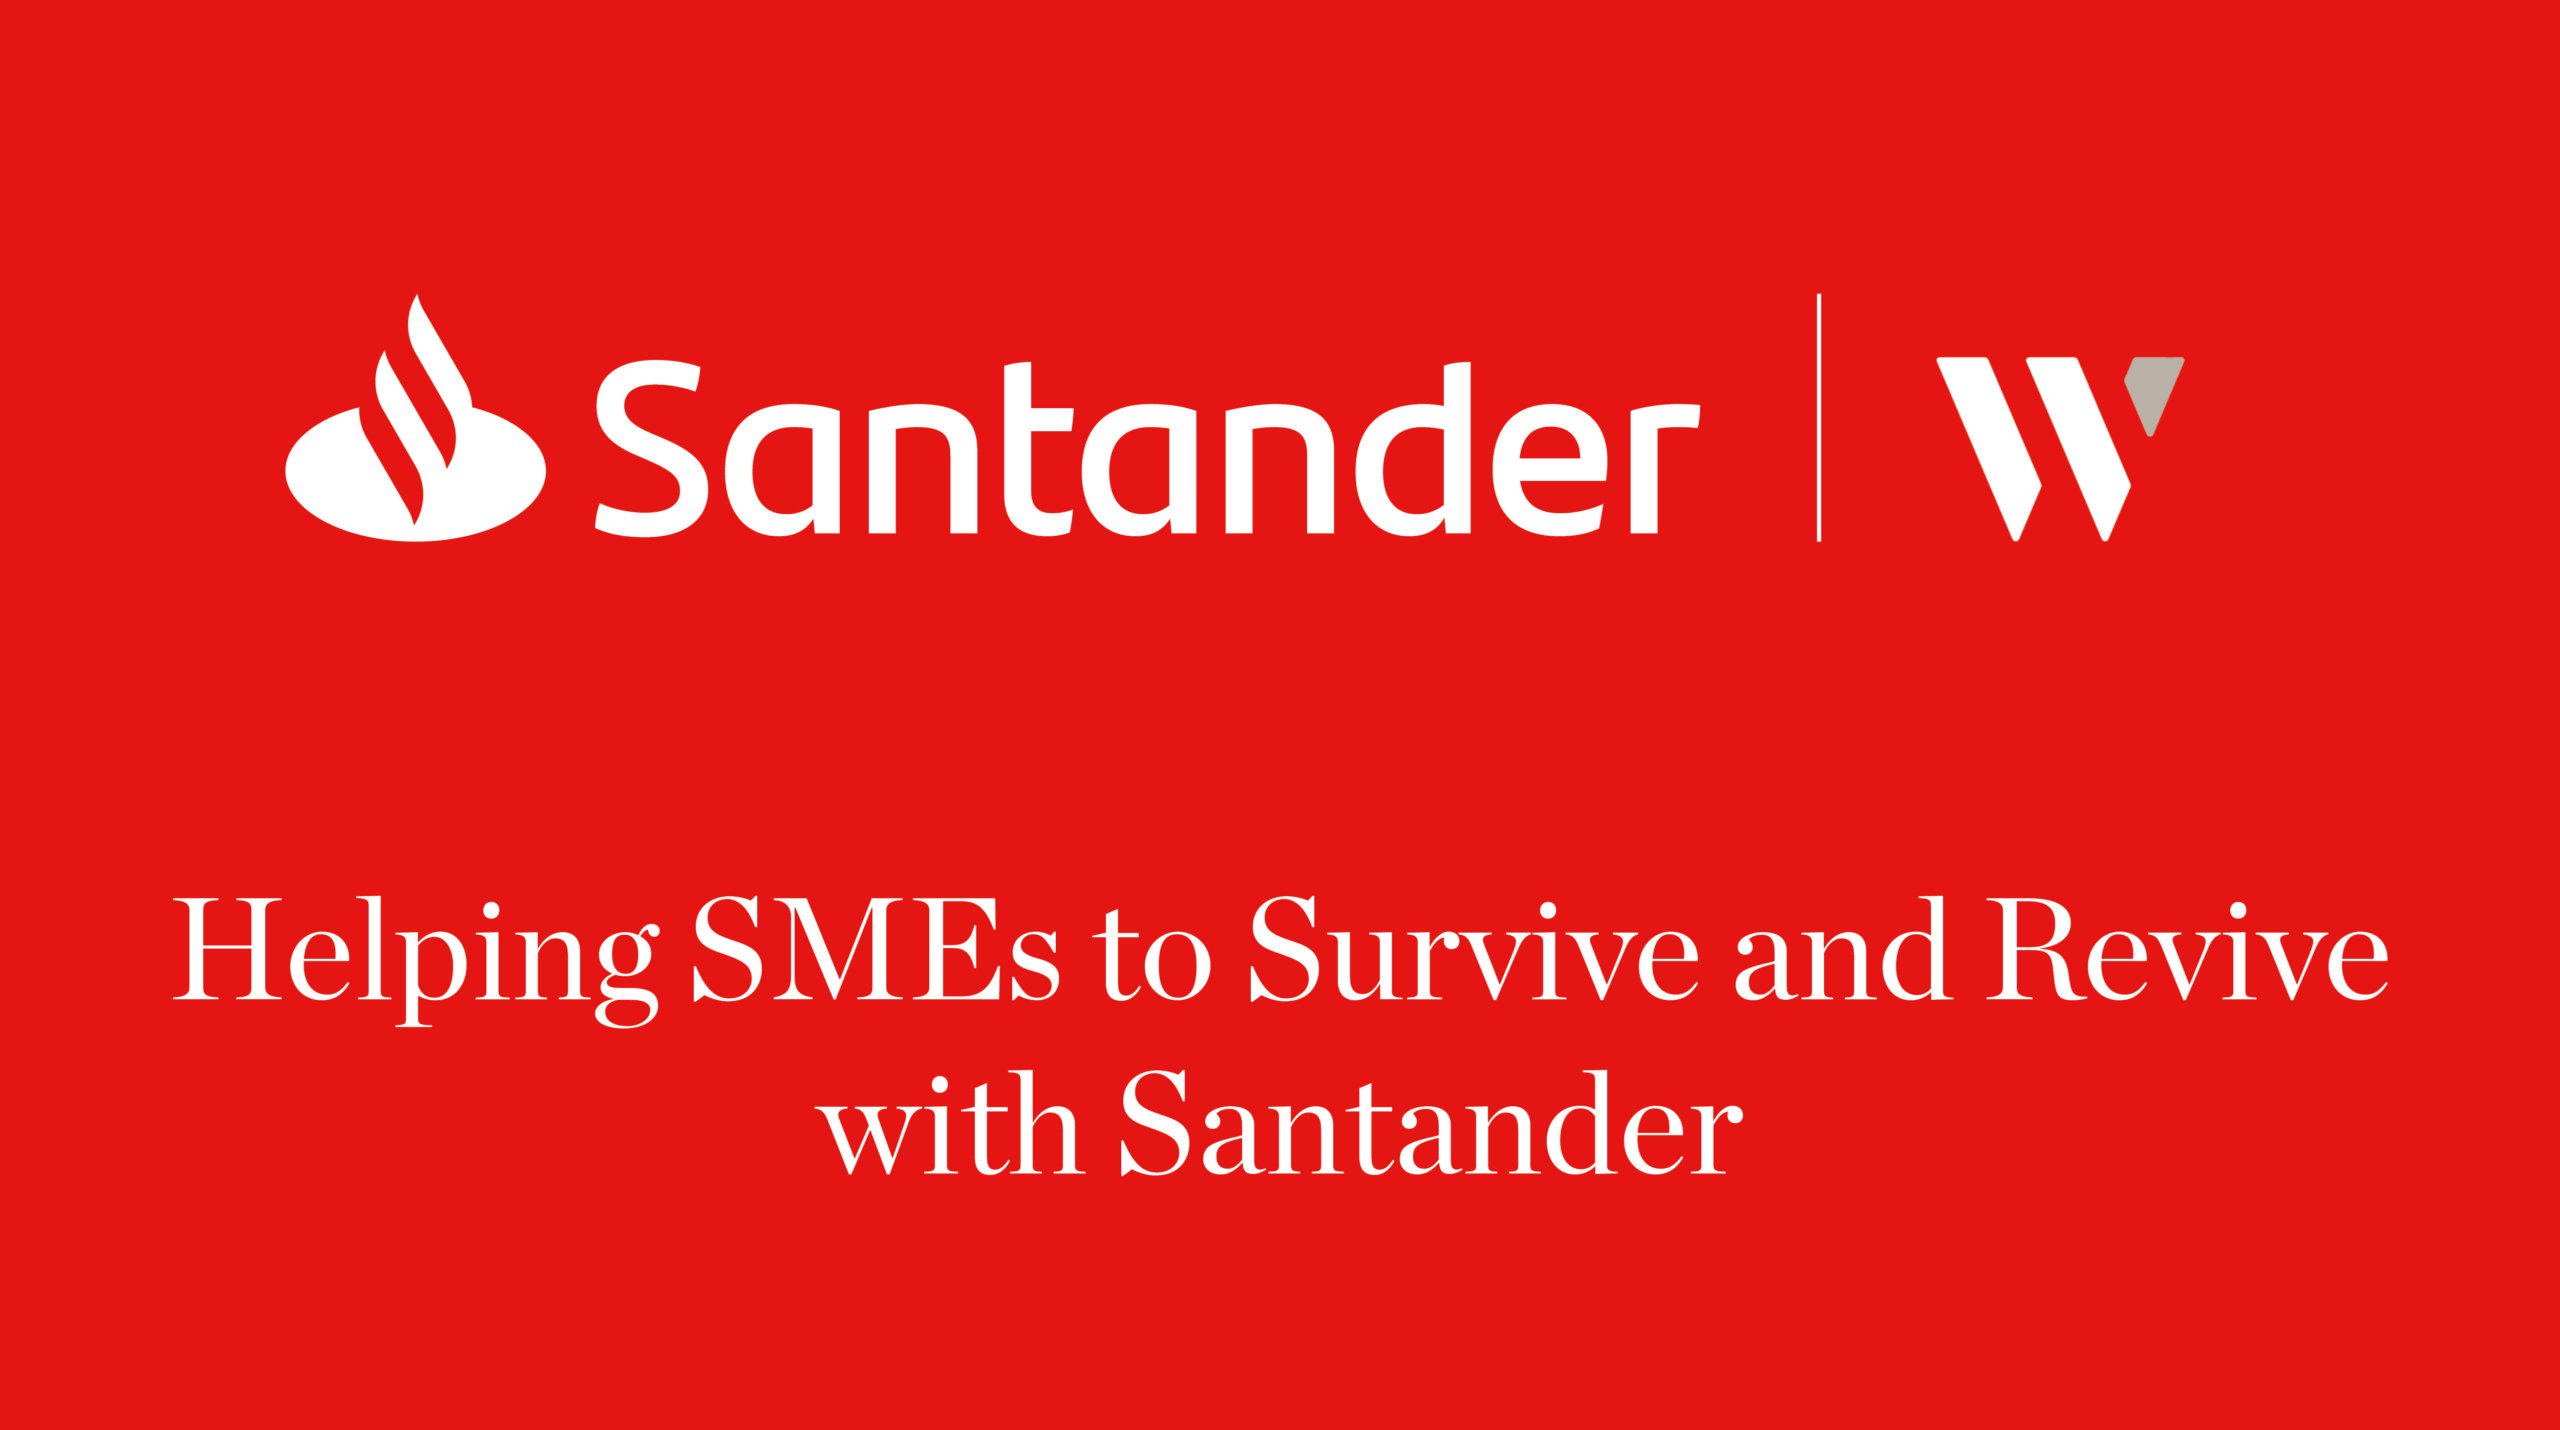 Helping SMEs to Survive and Revive with Santander